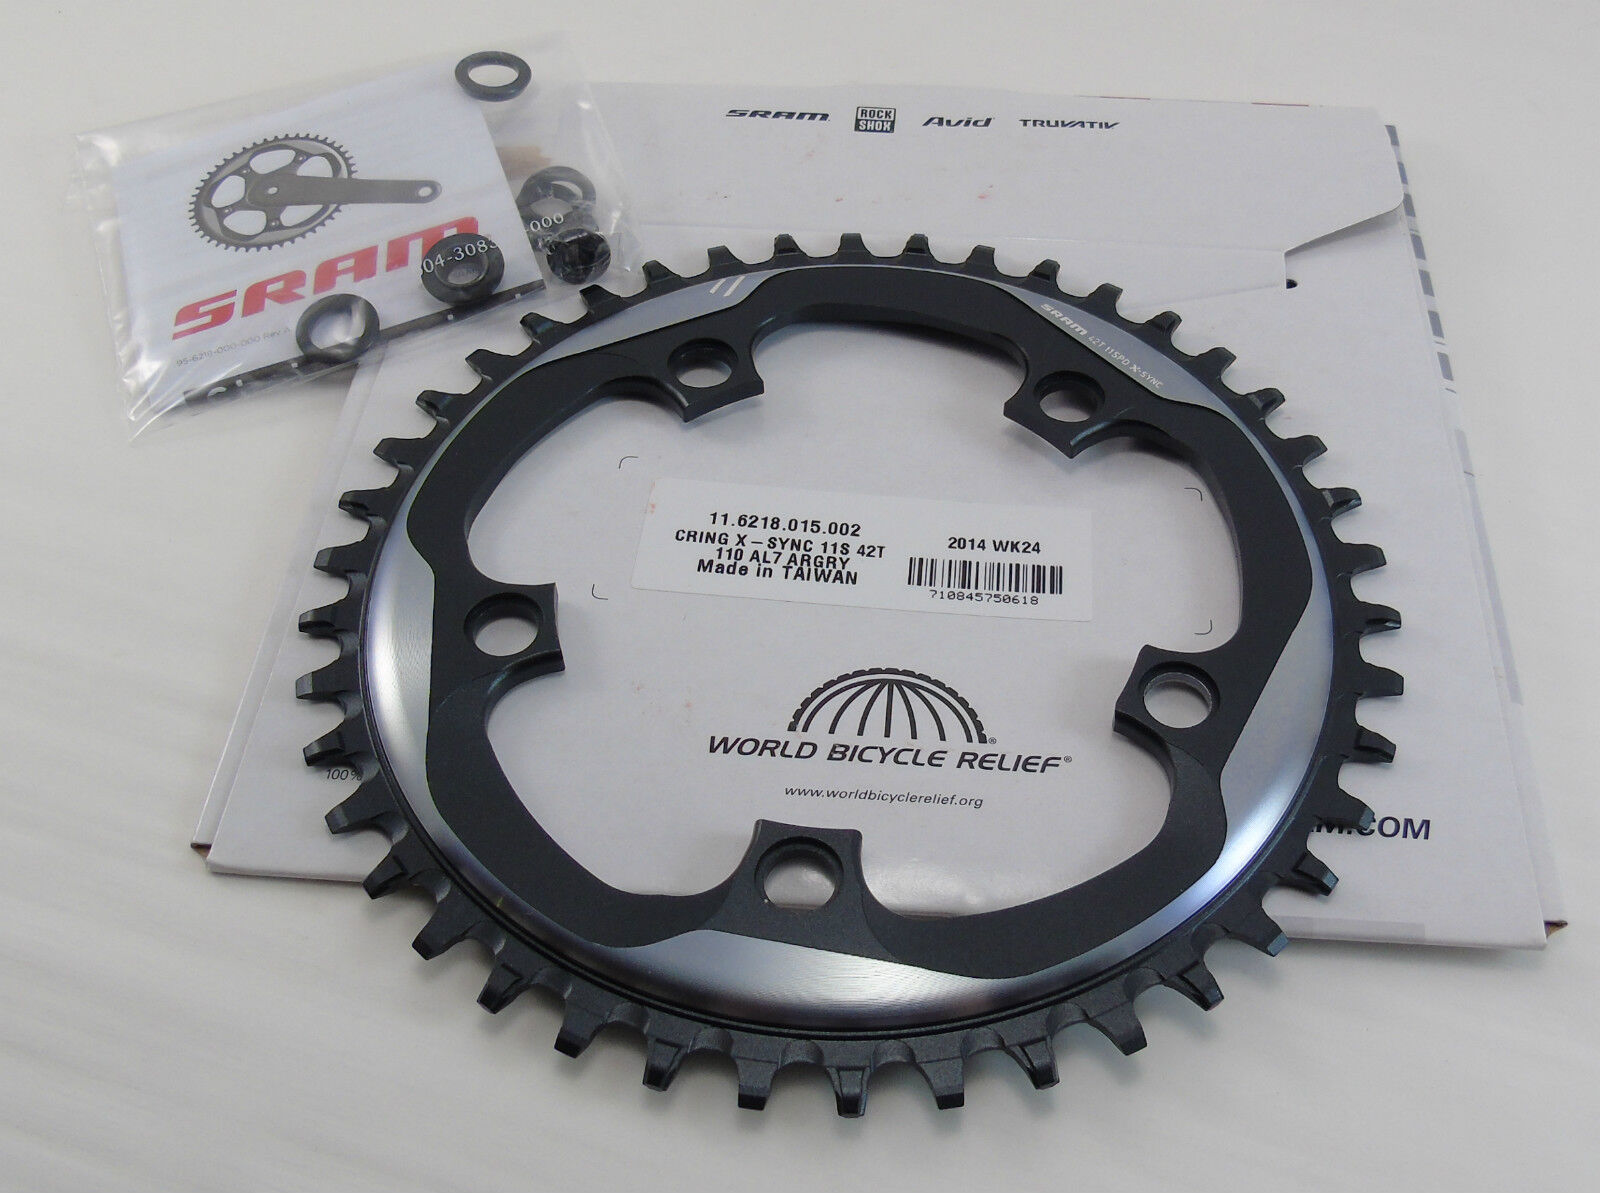 Genuine Sram X-Sync Chainring, 42T, 11 Speed,  110 BCD,  Brand New  2018 store